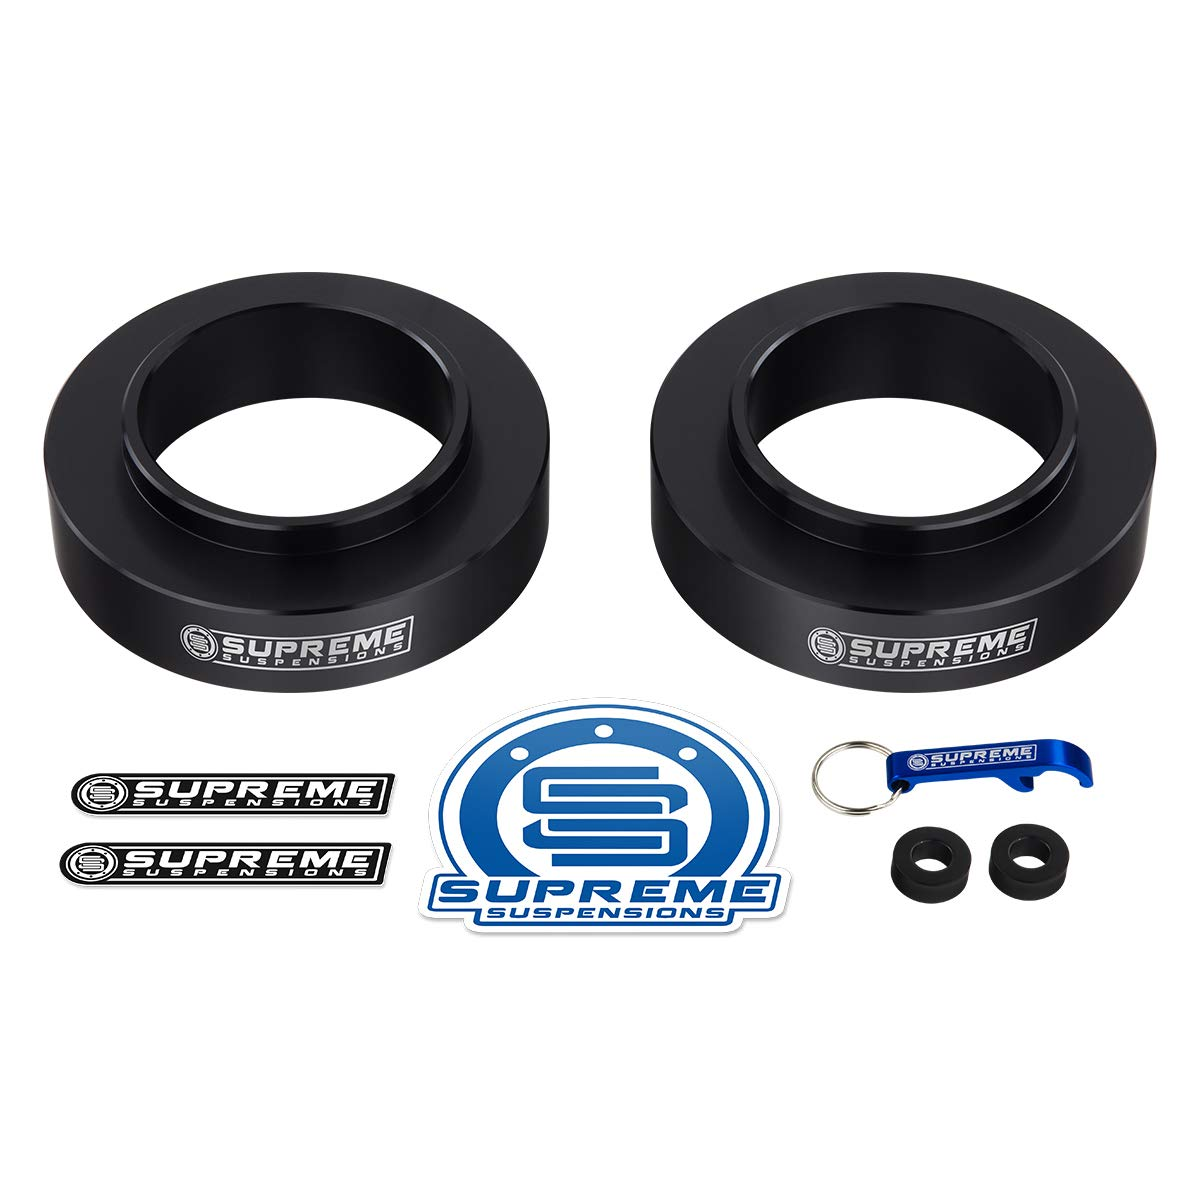 3 Front Lift Spring Spacers for 2004-2012 Chevy Colorado and GMC Canyon Supreme Suspensions 2WD Only